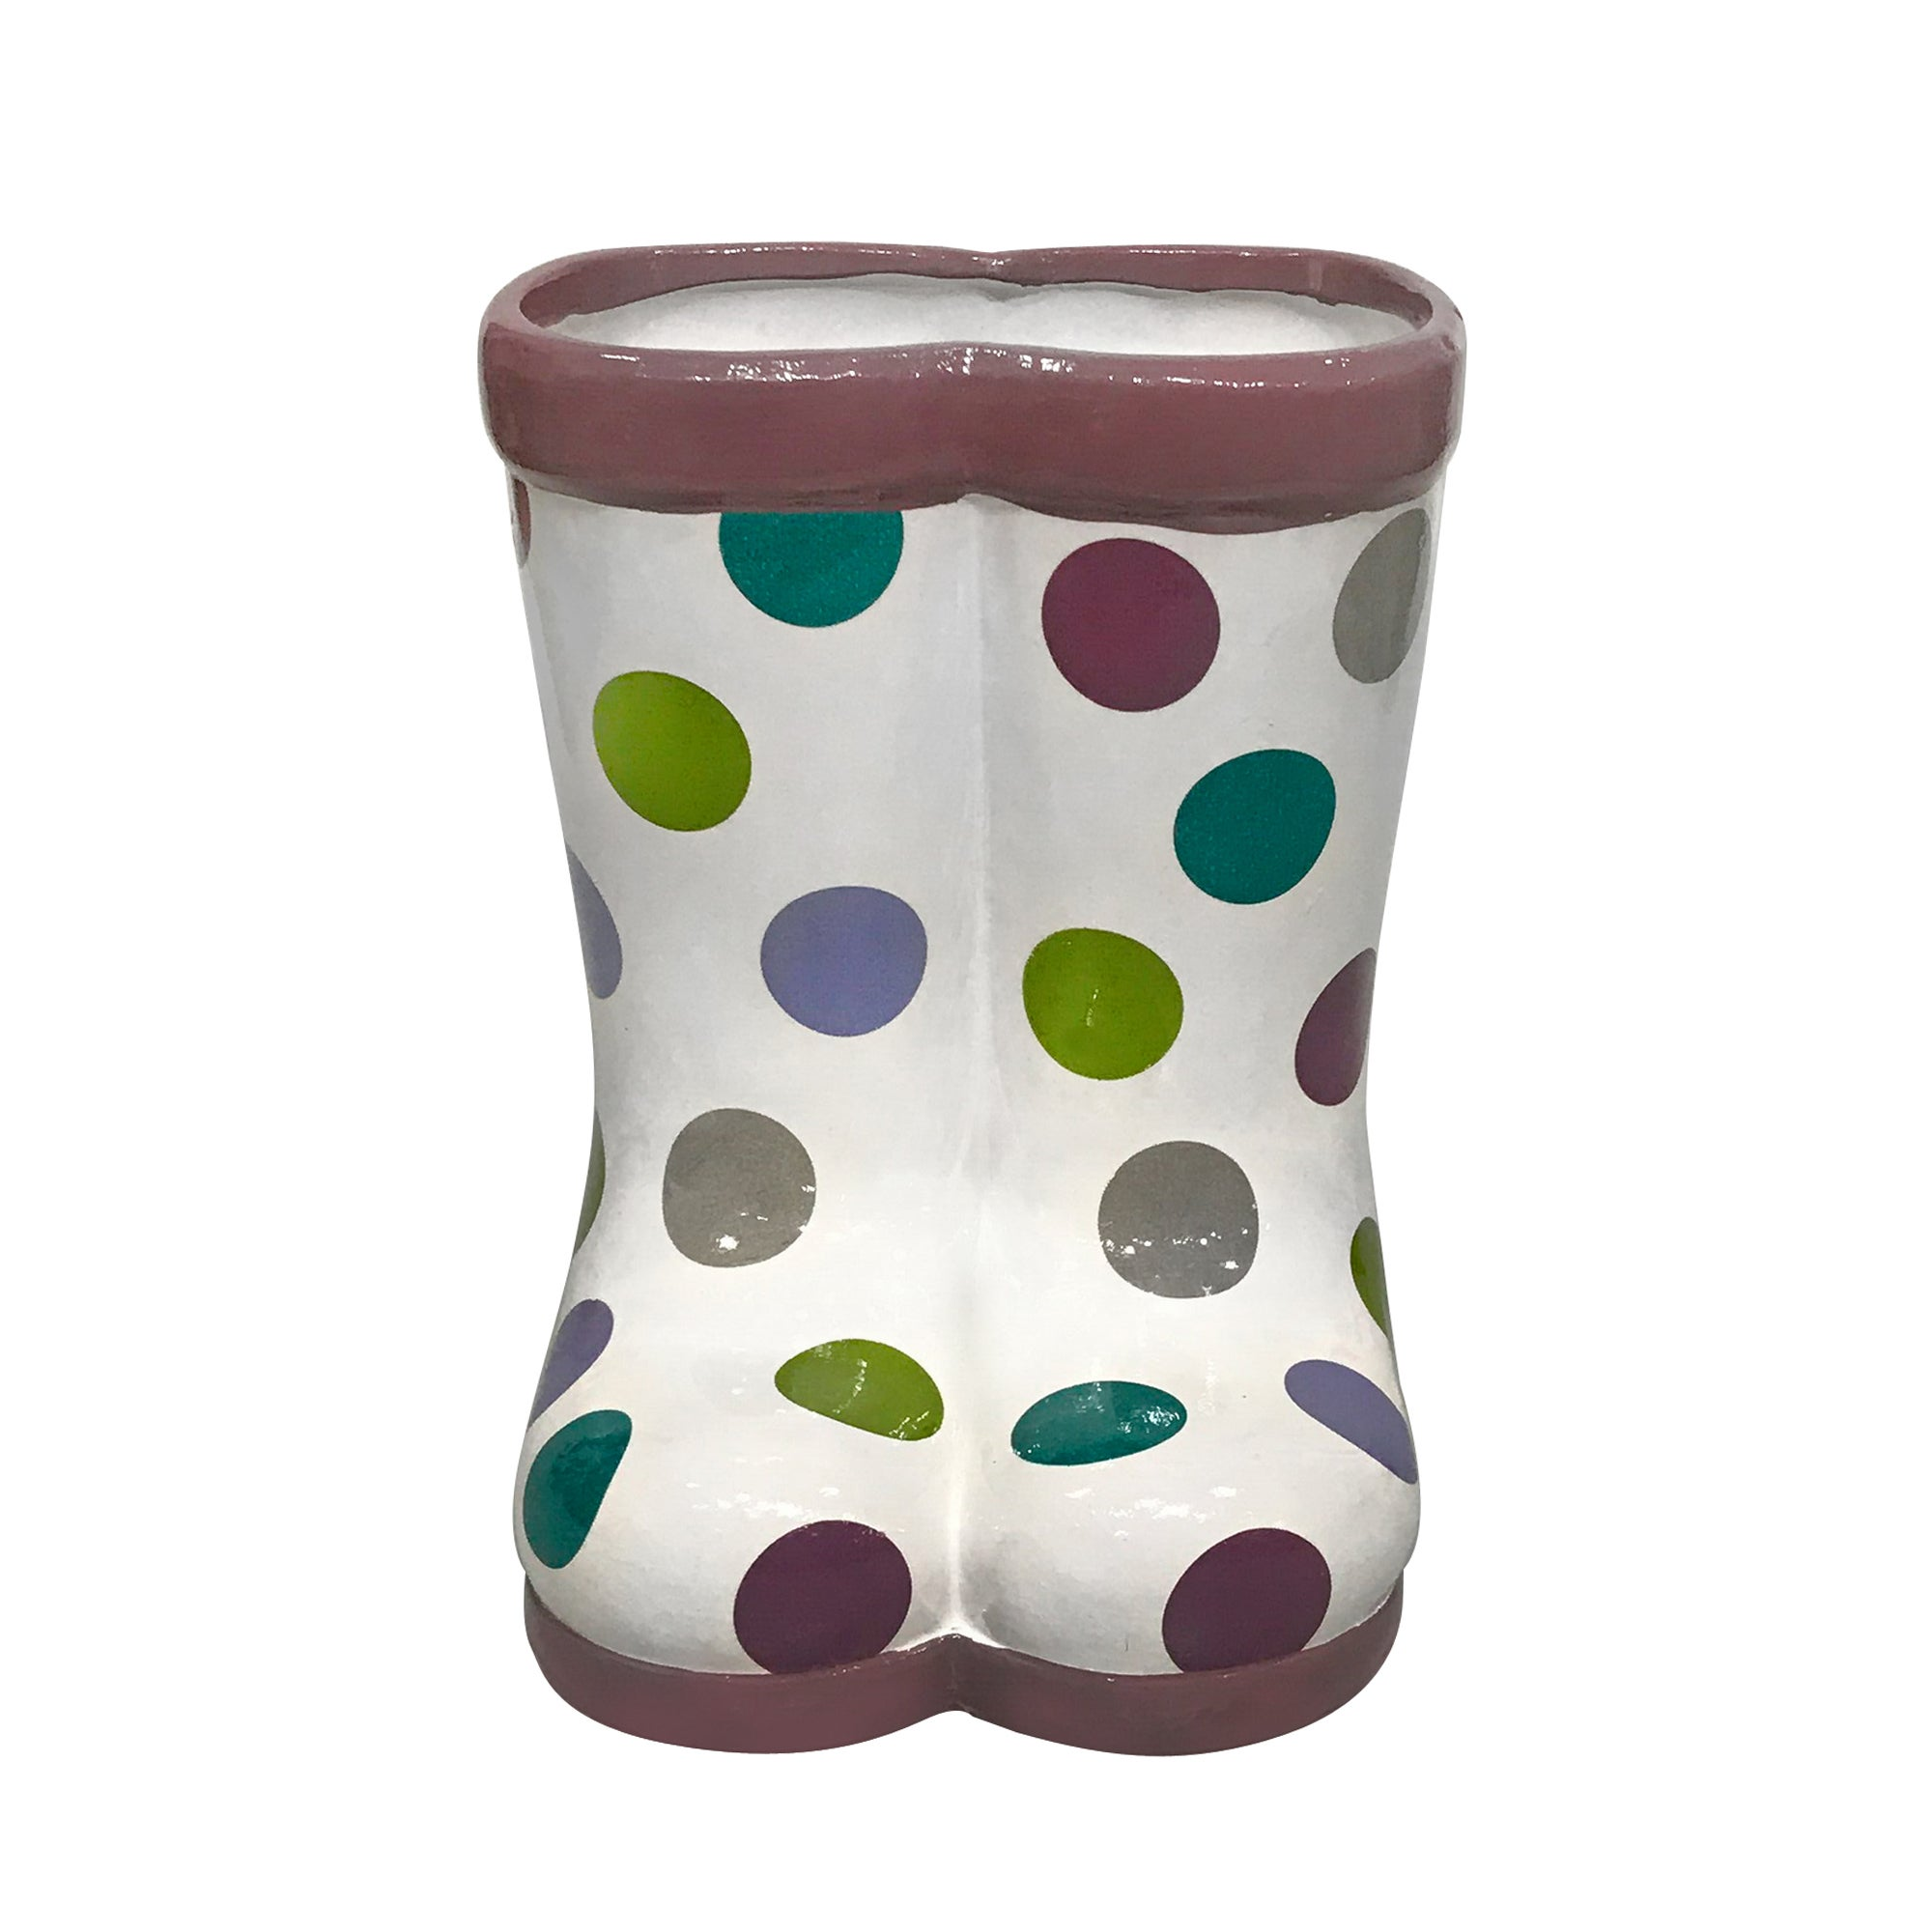 Image of Spotty Ceramic Welly Boot Planter Multi Coloured